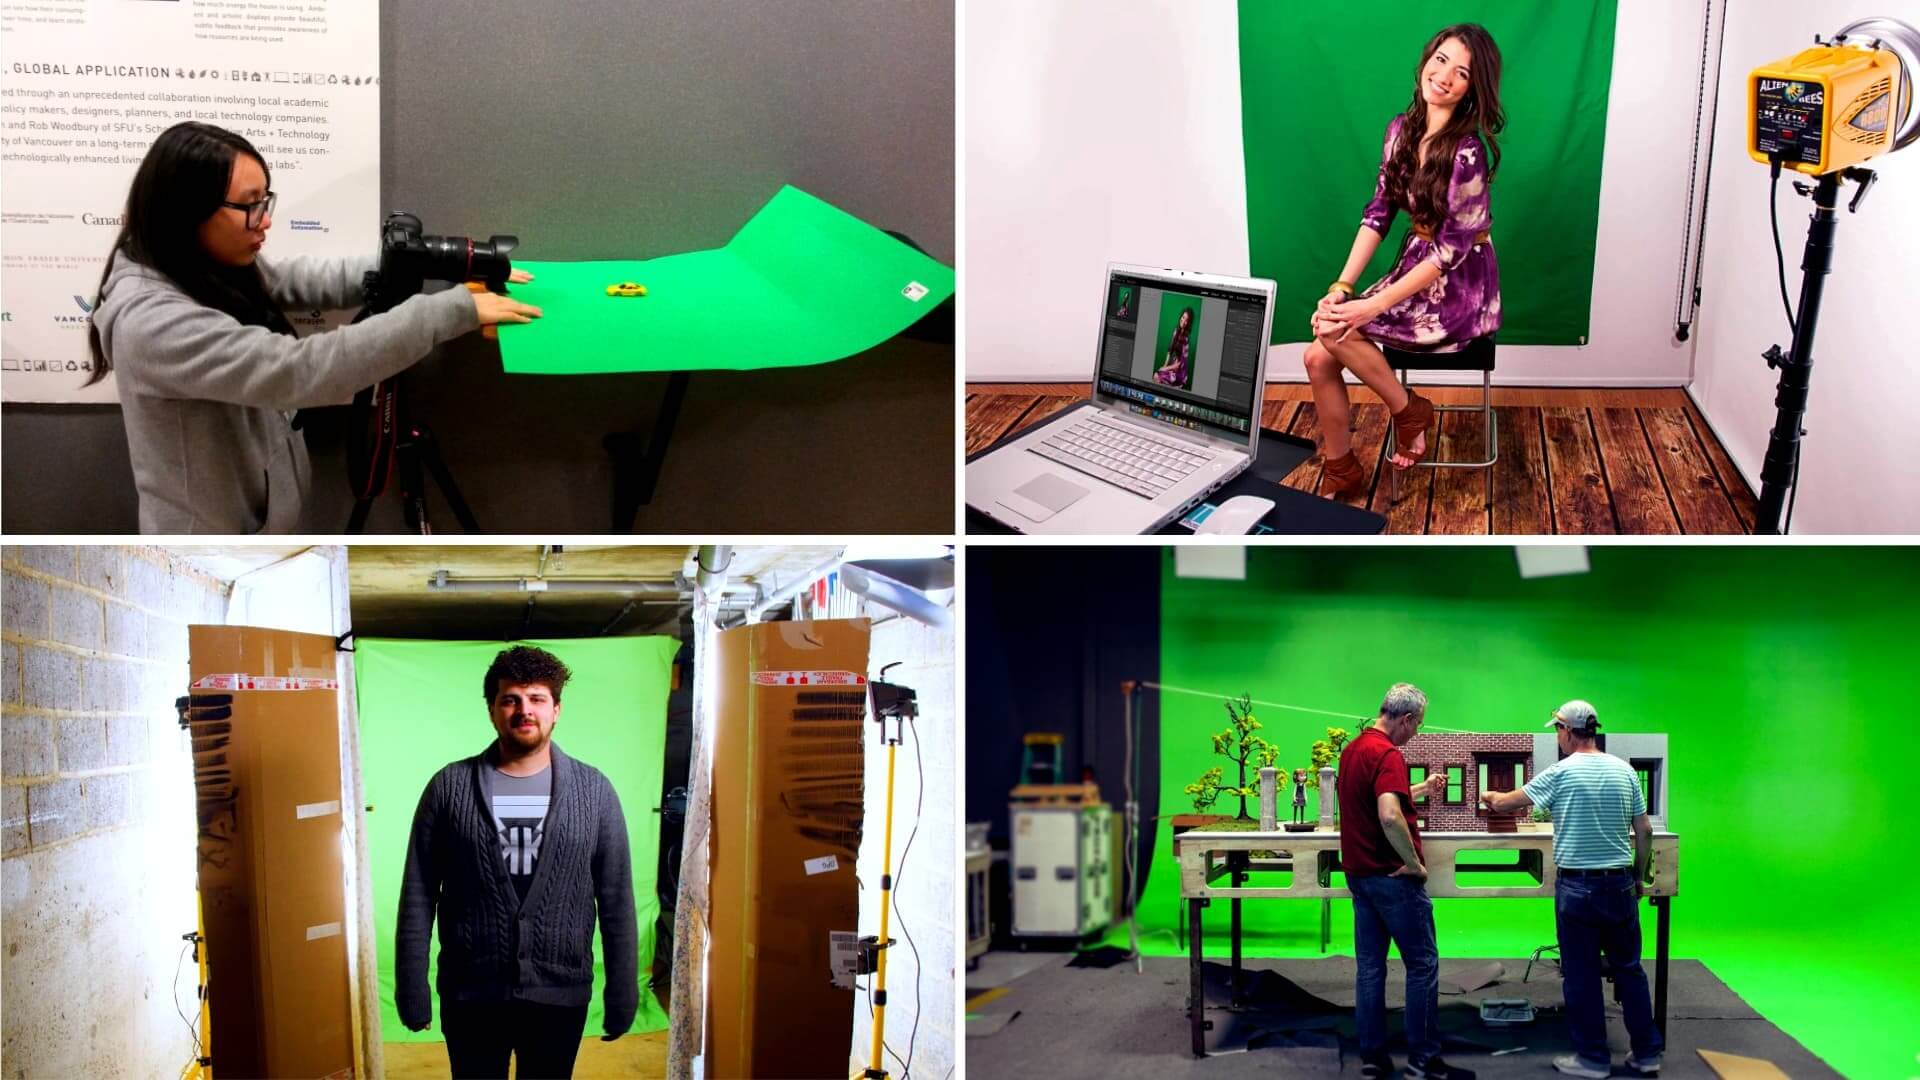 How to Make a Green Screen - DIY Green Screen Hacks - Featured